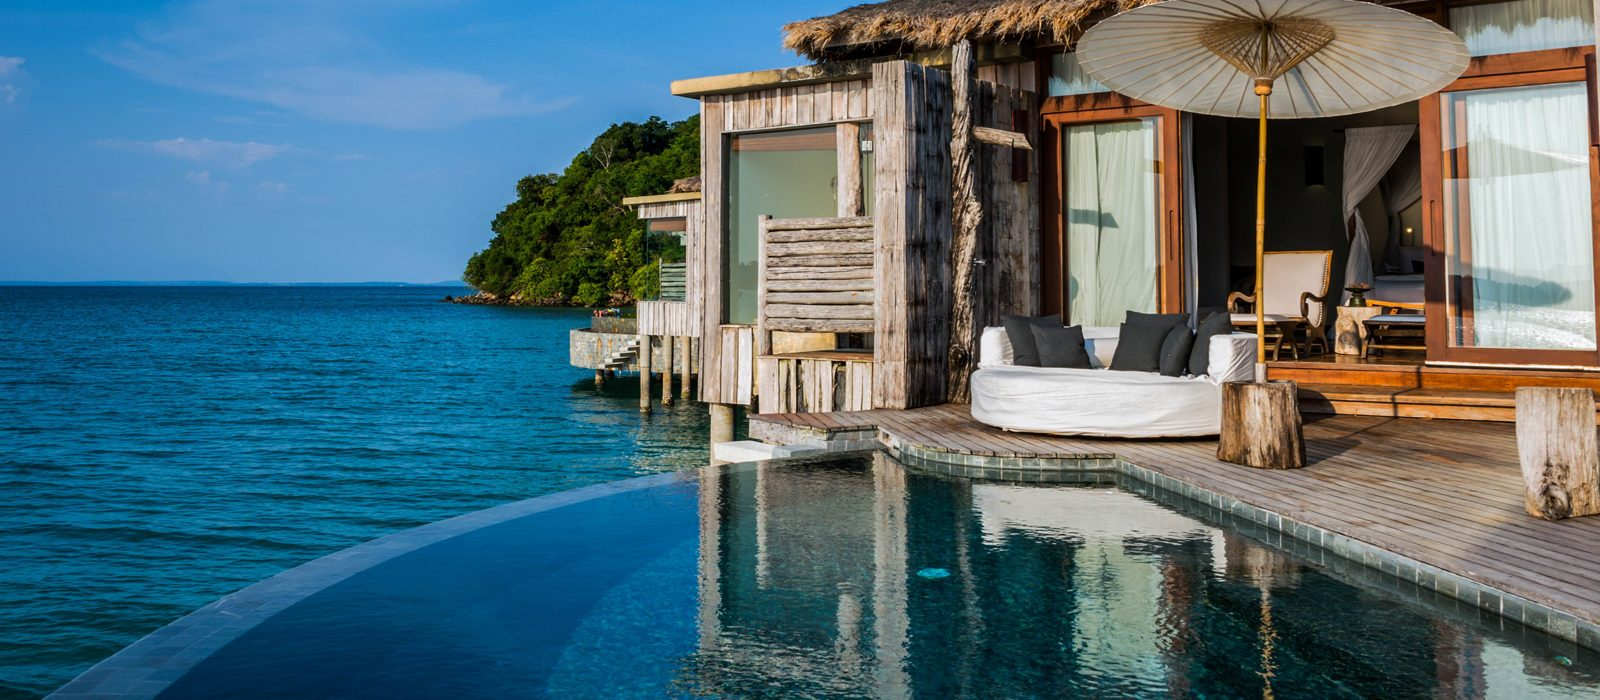 Luxury Cambodia Holiday Packages Song Saa Private Island Resort Cambodia Header